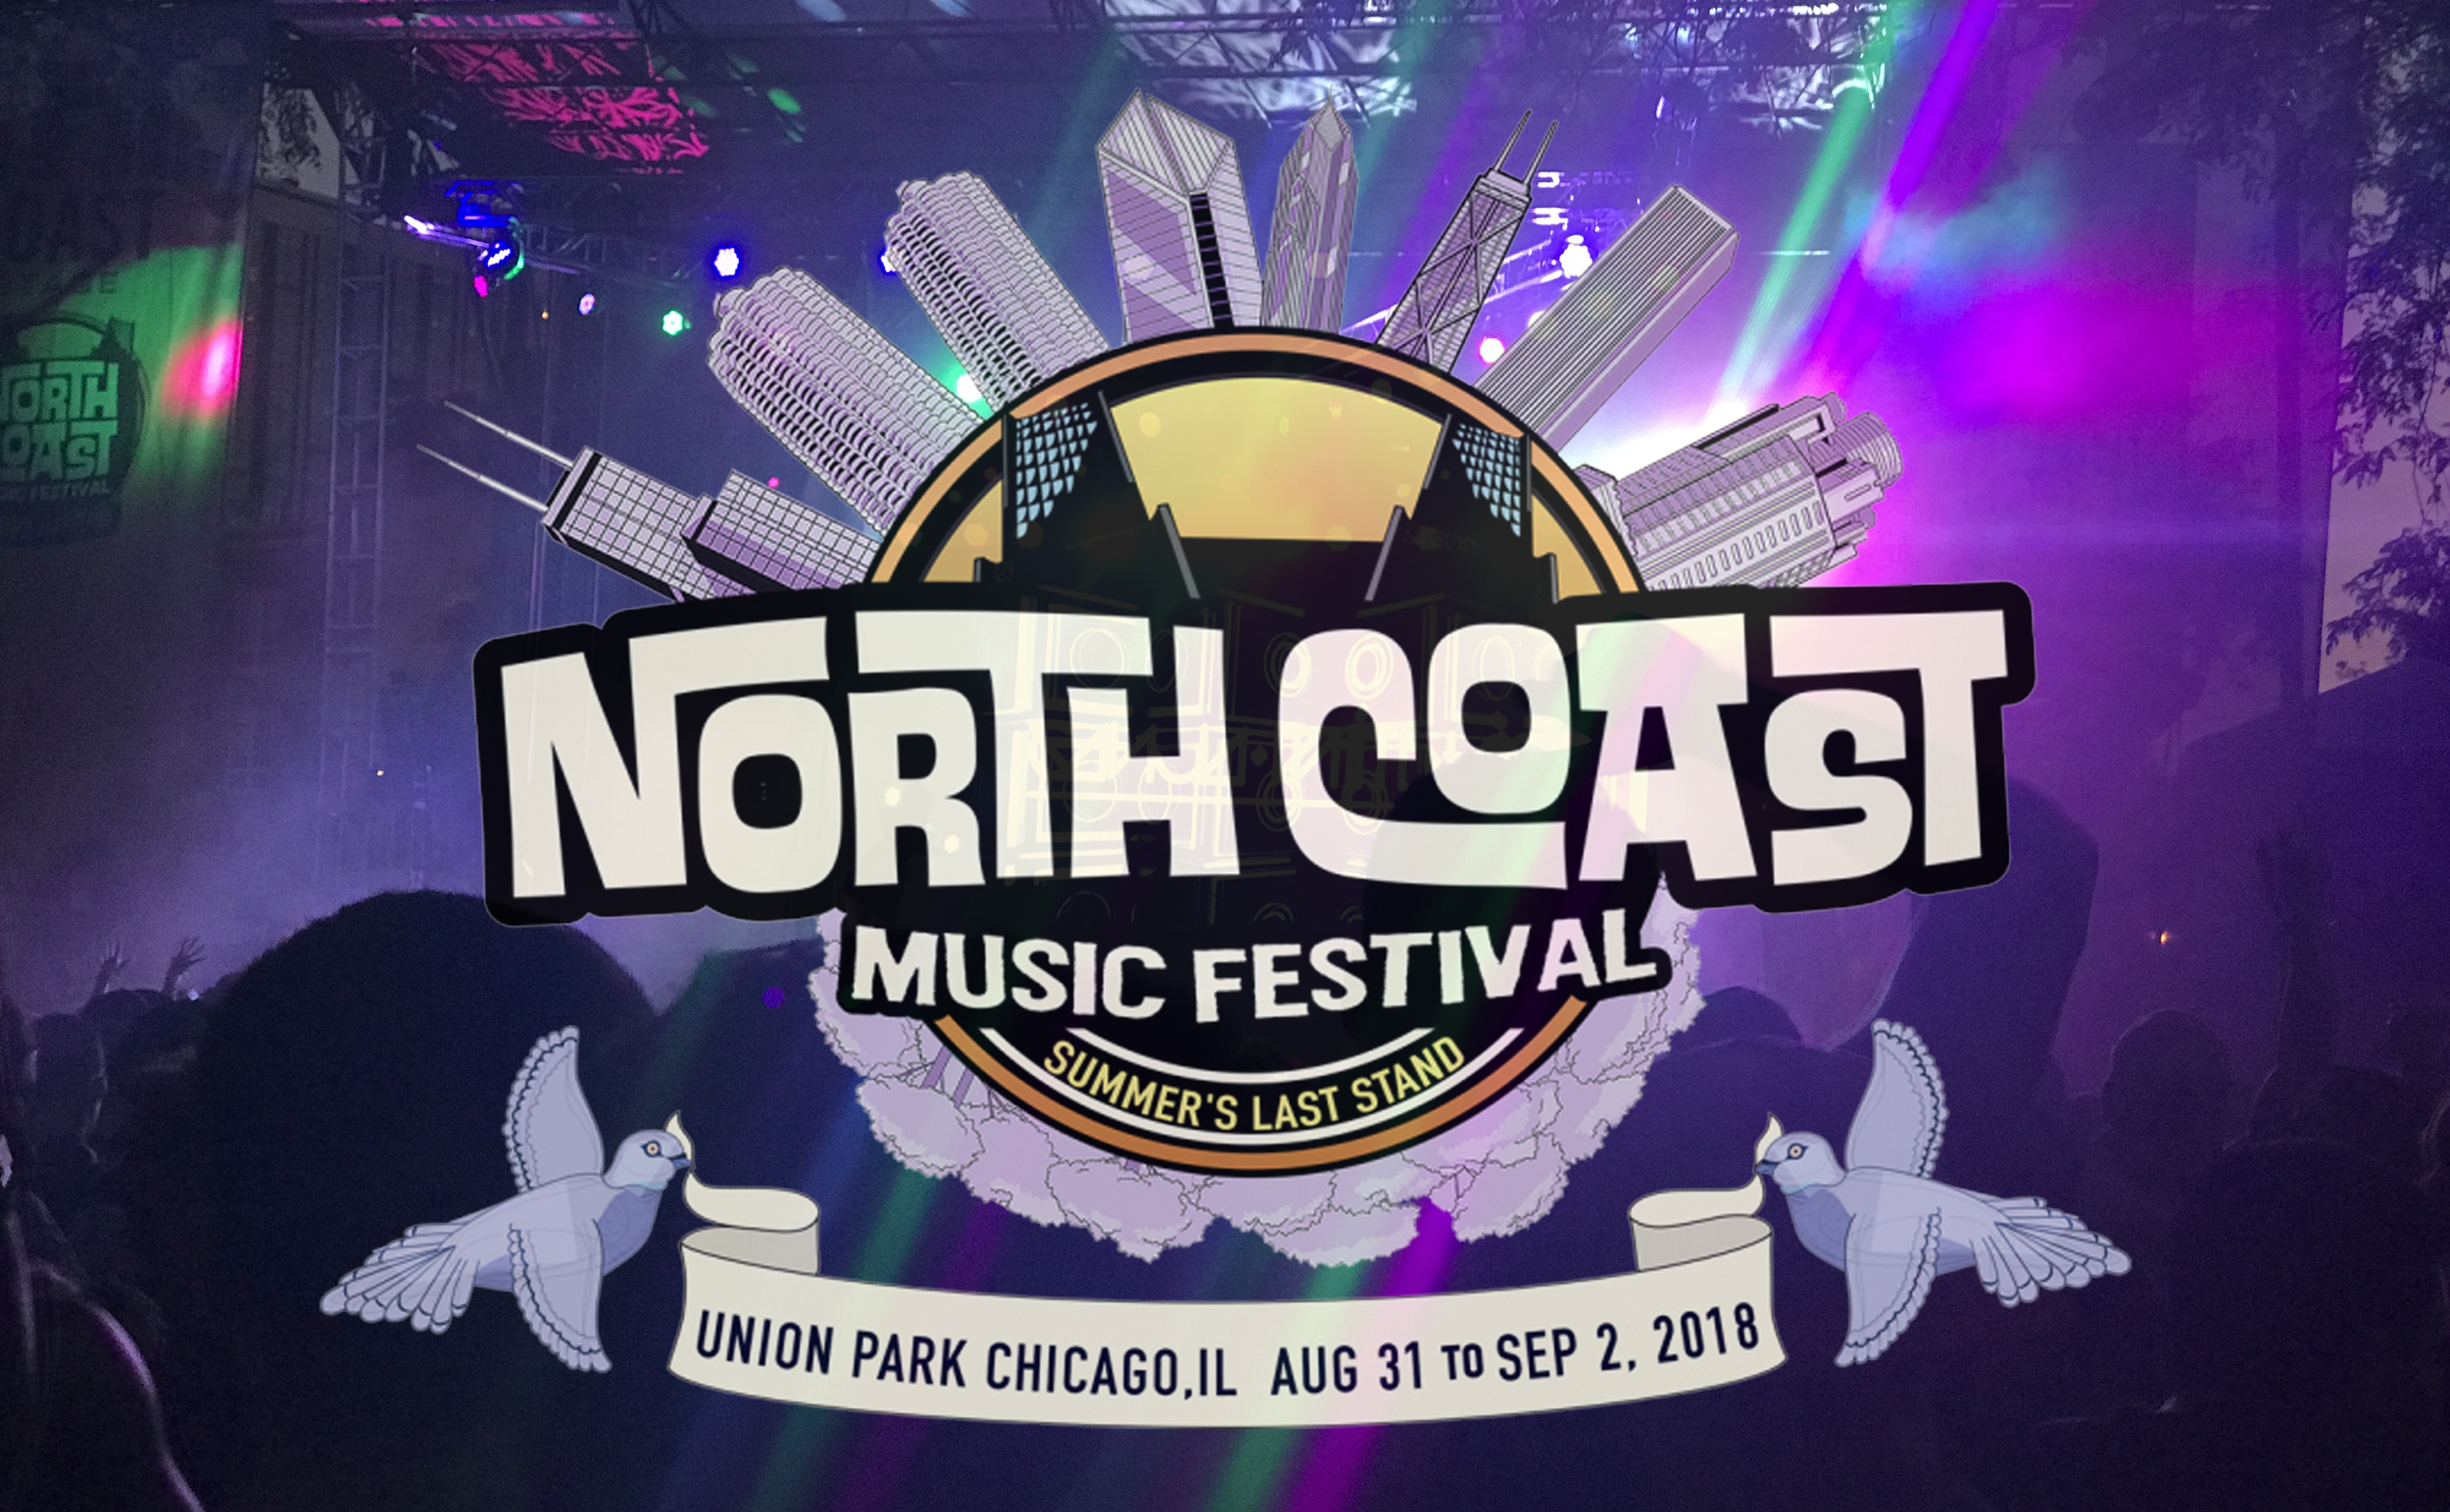 NORTH COAS MUSIC FESTIVAL LINEUP AND SET TIMES